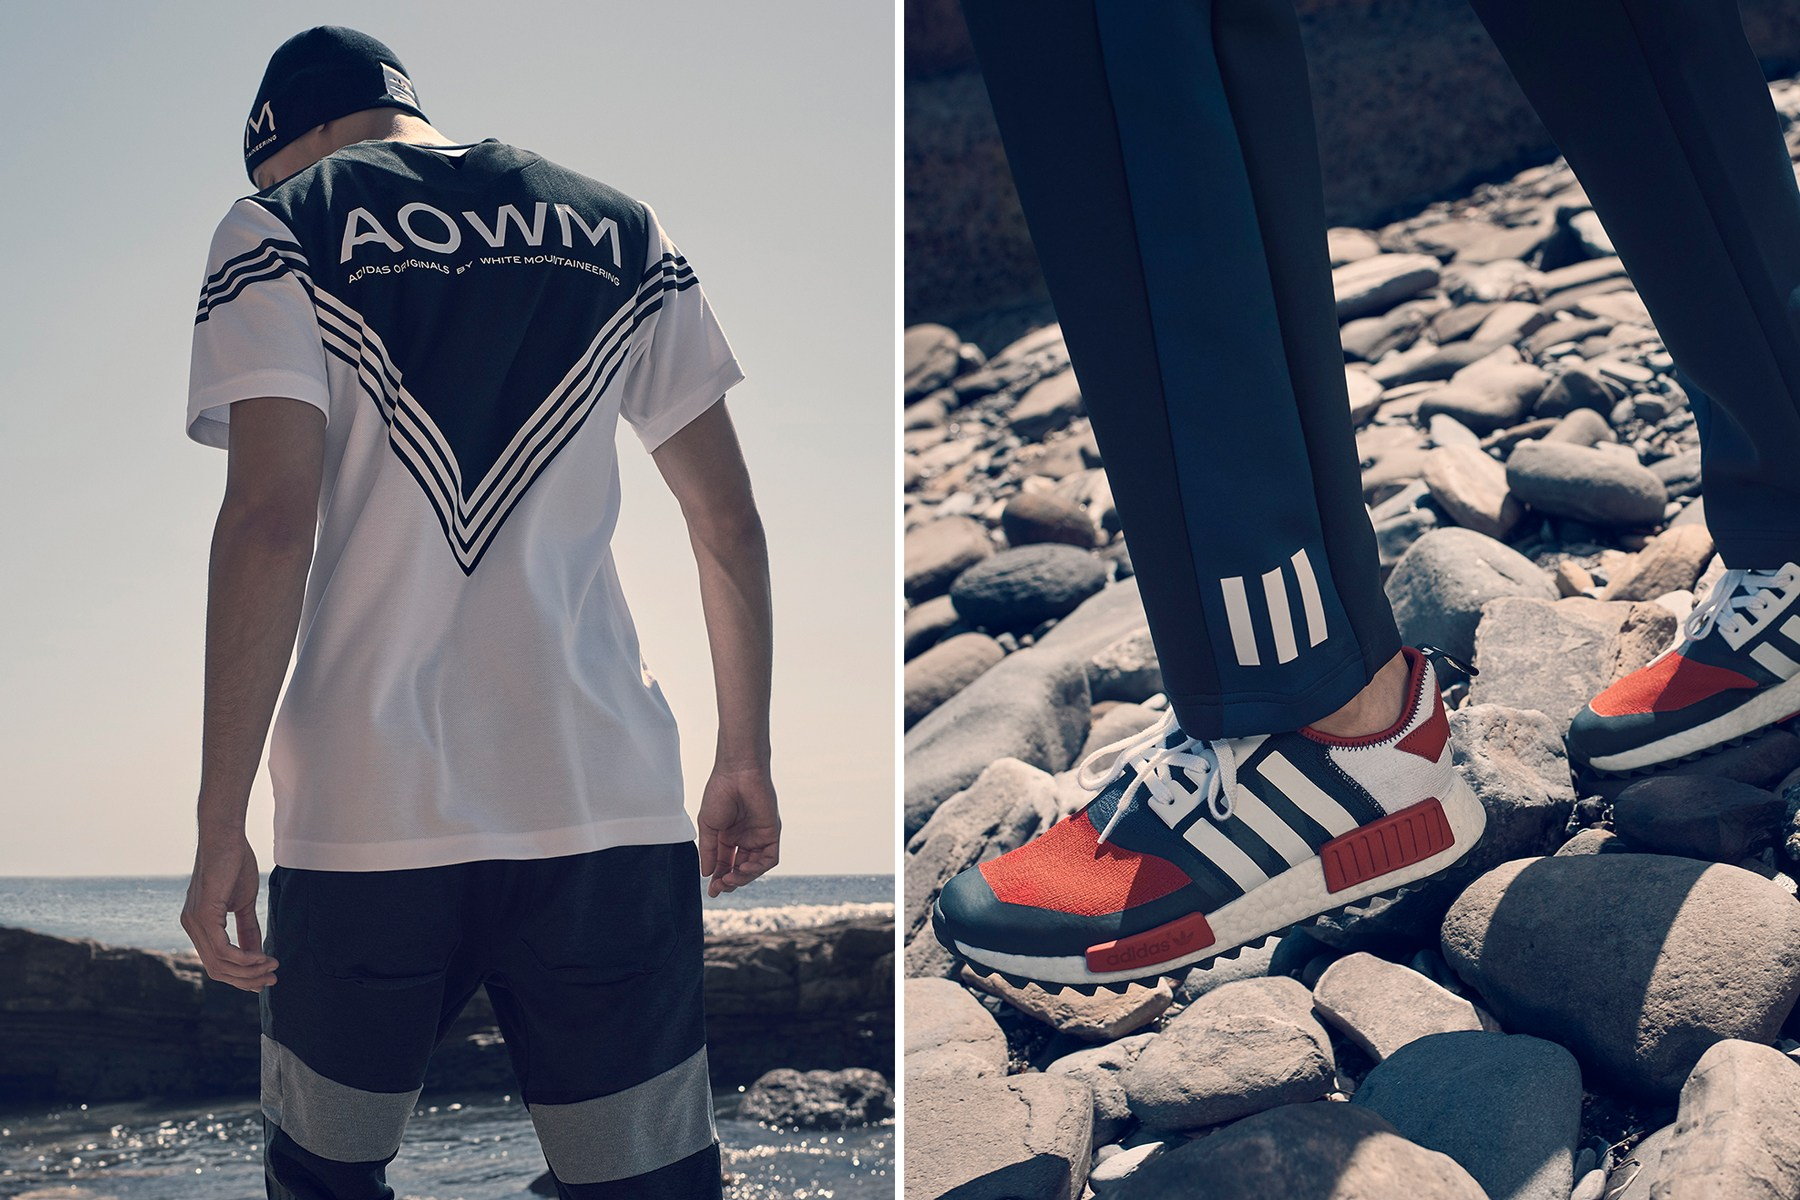 adidas Originals Drop x Blanco Mountaineering Drop Originals SS 17 Lookbook 587231